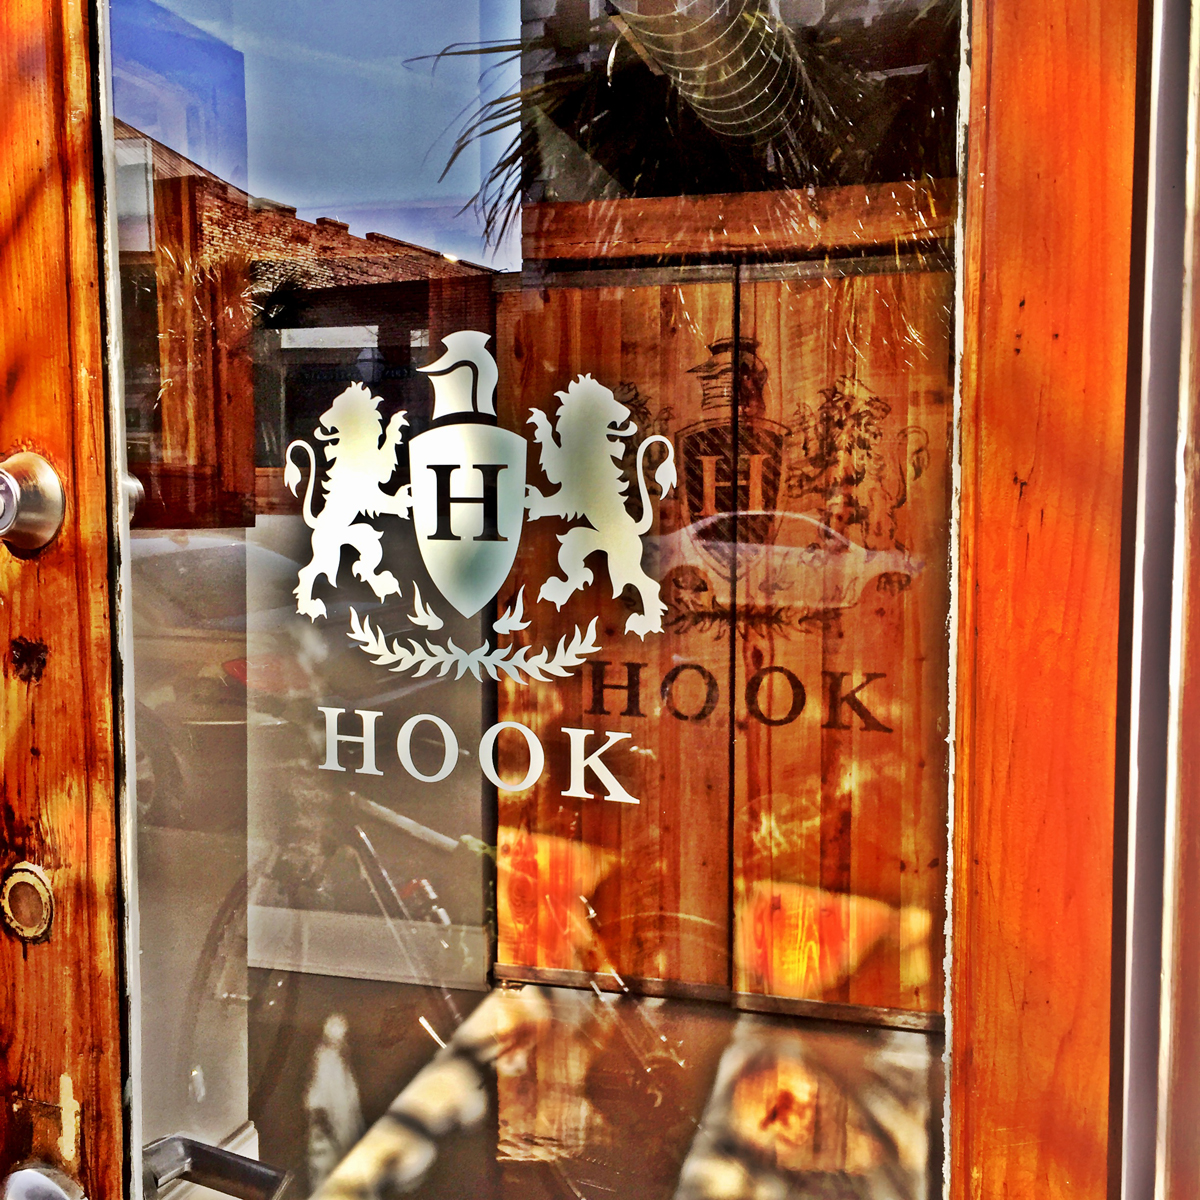 I will admit, I know nothing about Hook except that I dig their storefront.  I googled it and apparently they are an advertising company.  Their advertising worked!